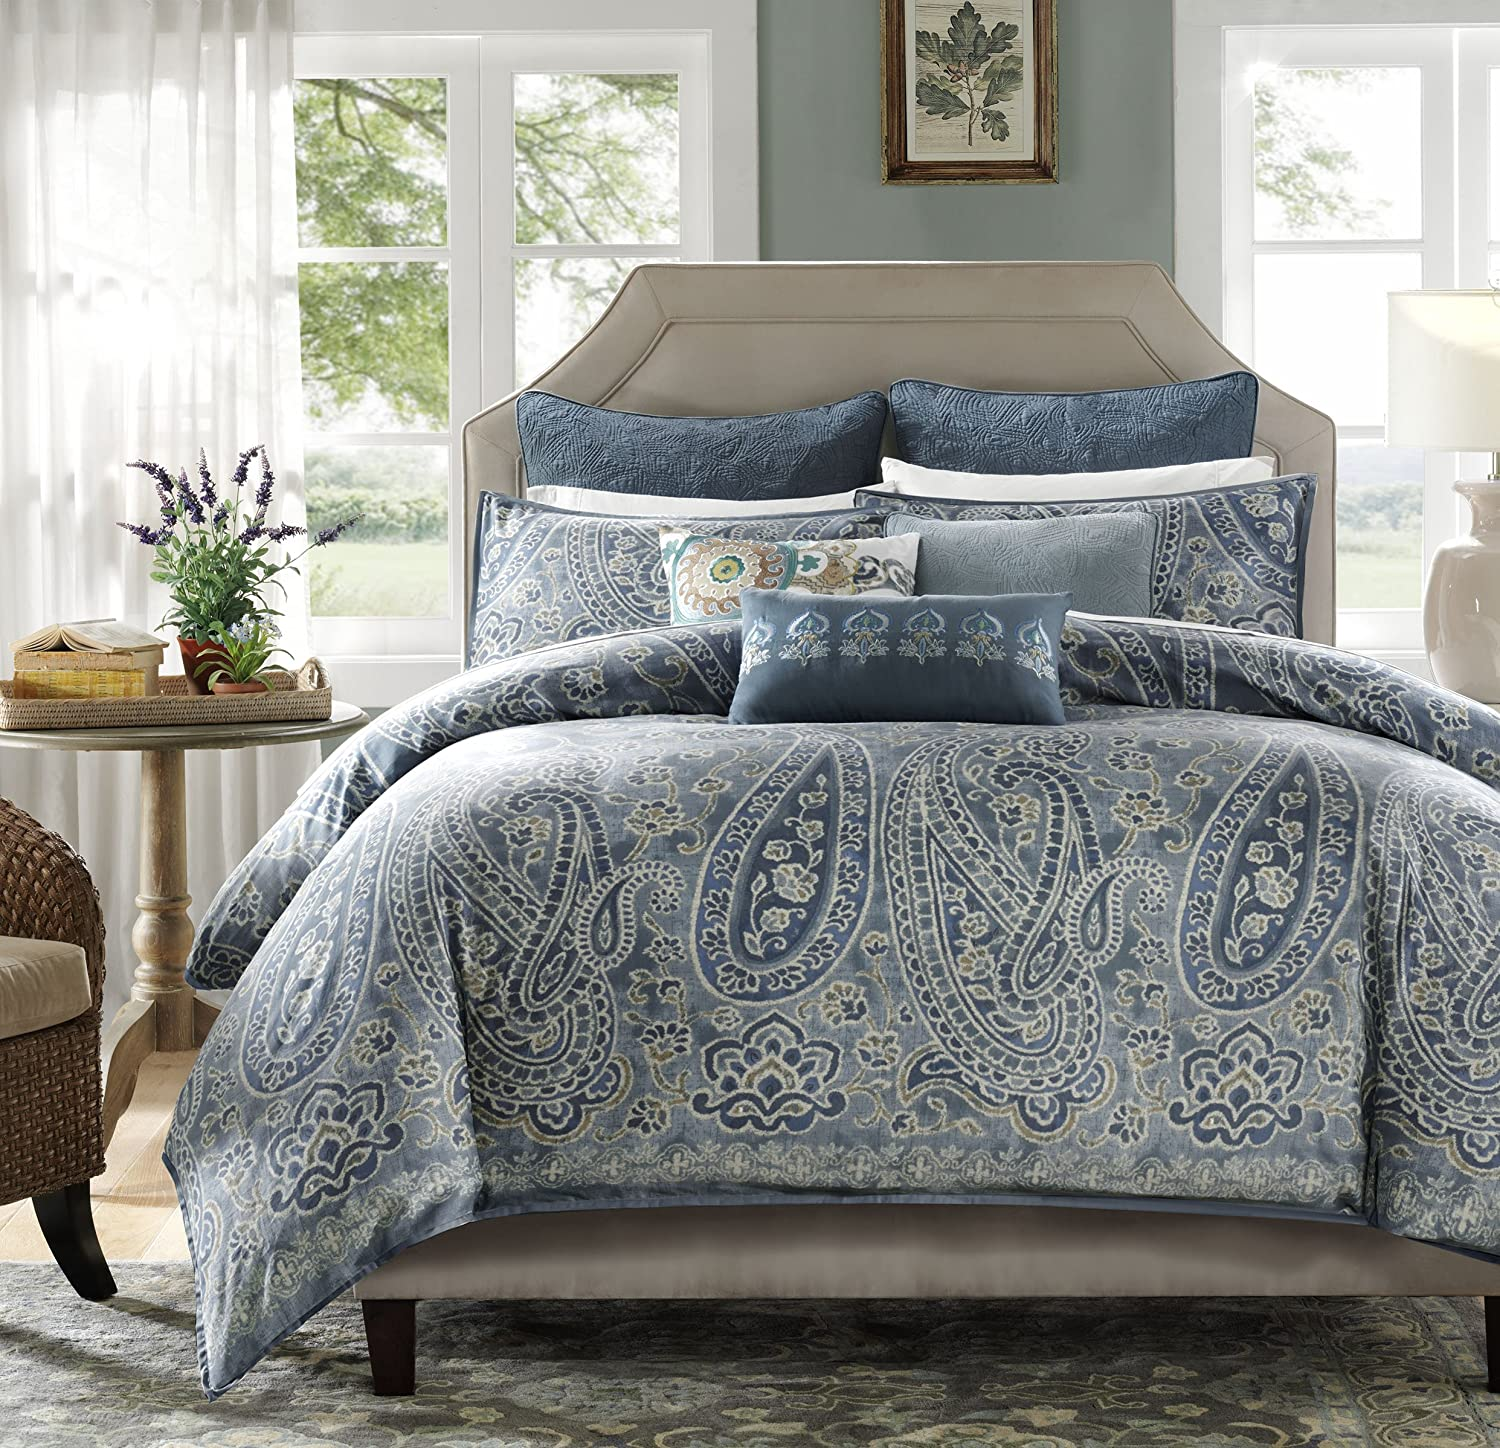 Harbor House Belcourt Duvet Cover Set, King, Multi-Color